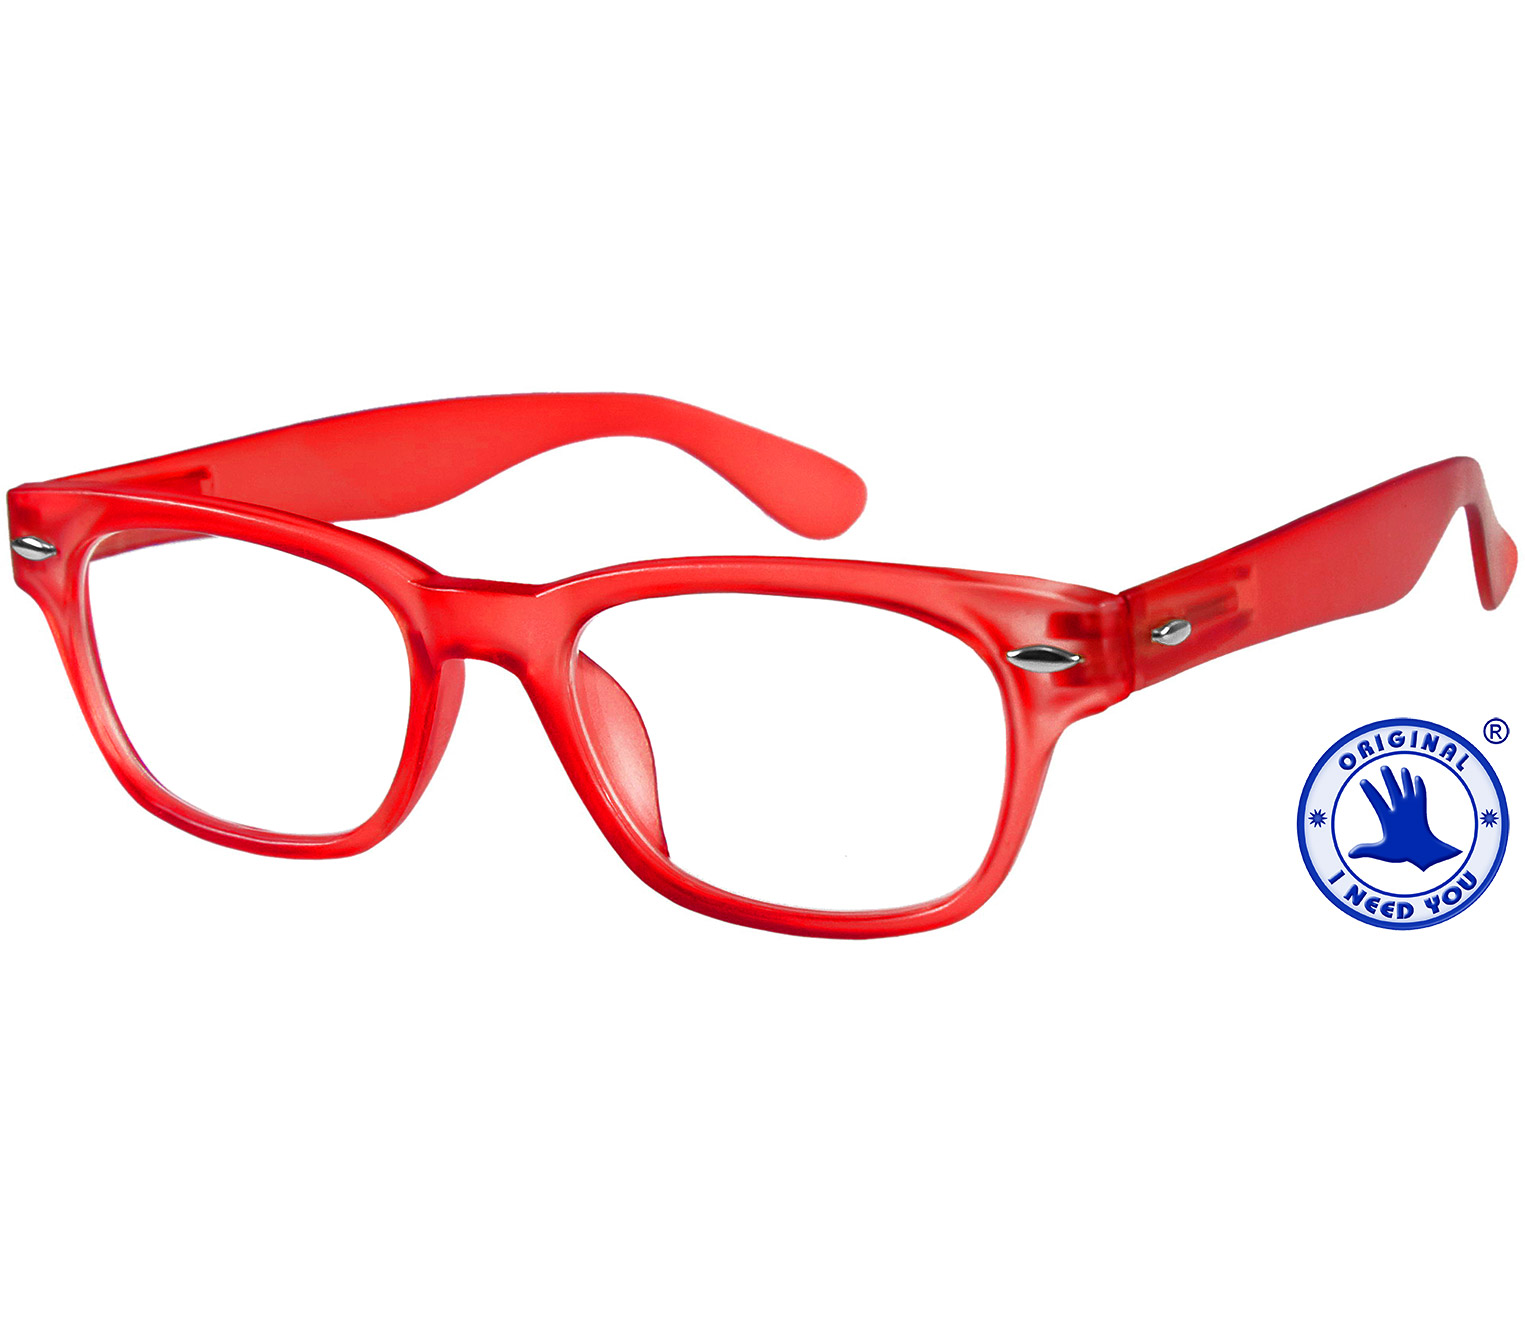 Main Image (Angle) - Woody (Red) Retro Reading Glasses